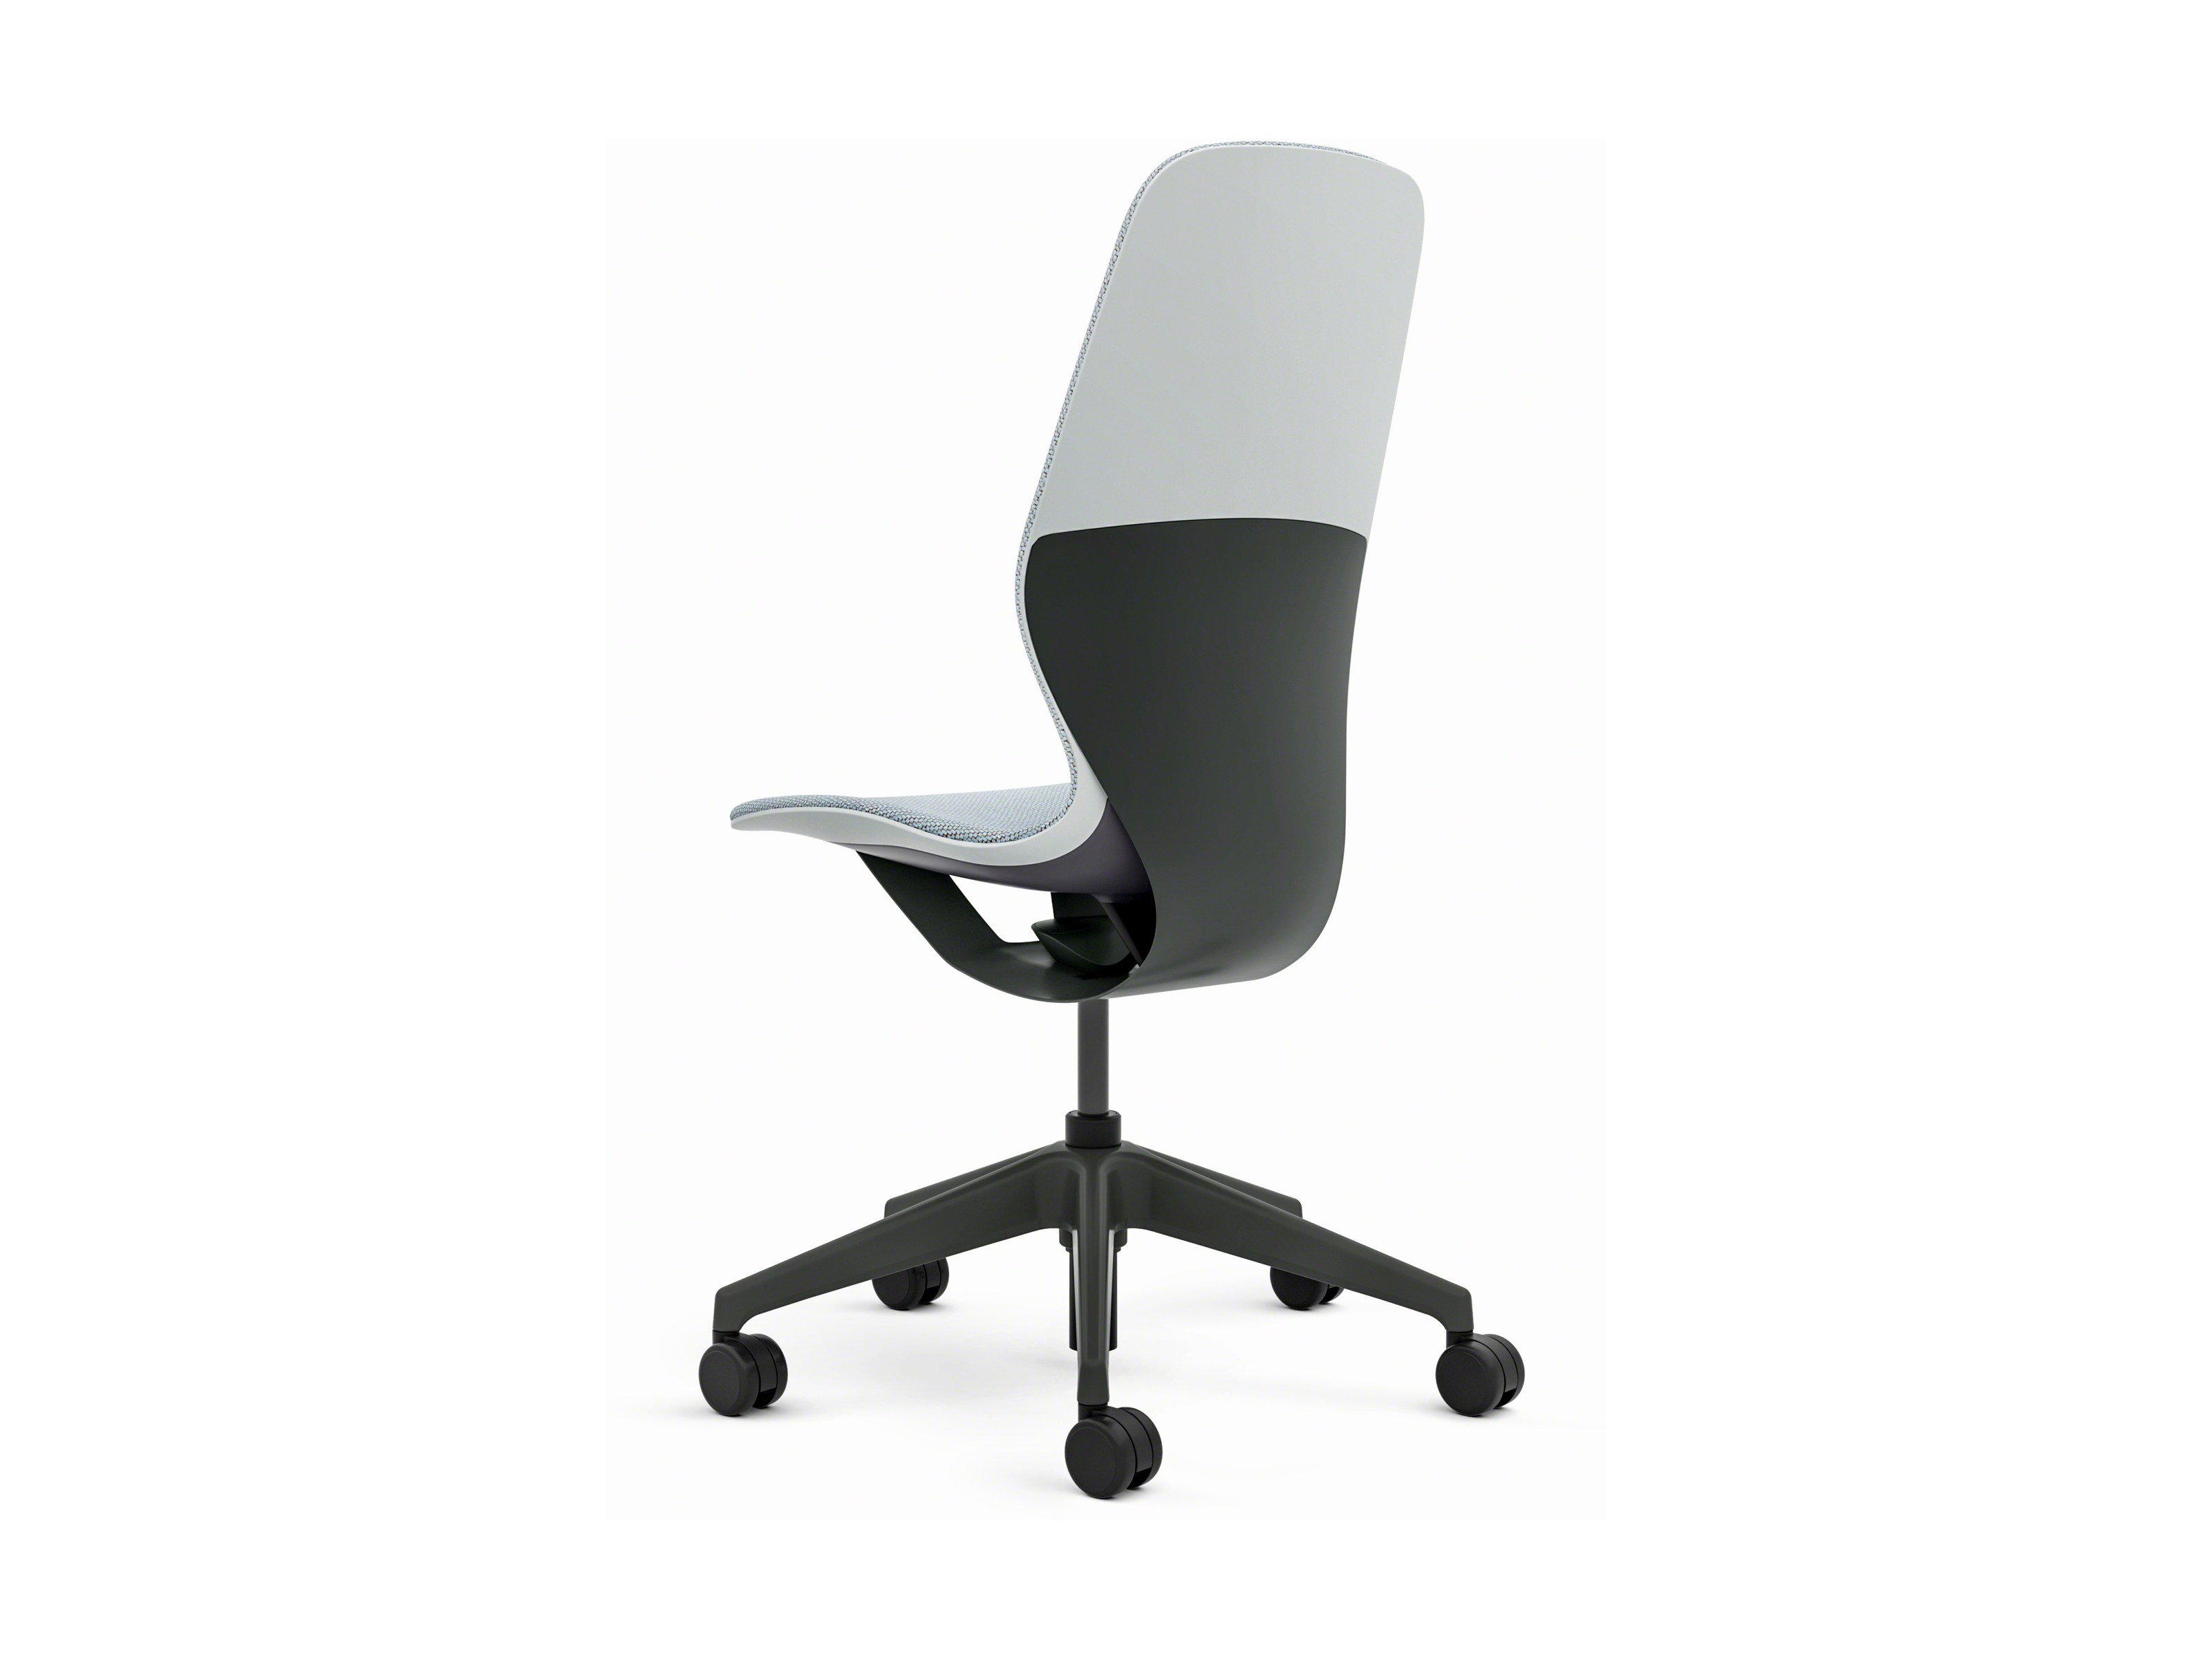 SILQ Armless Chair by Steelcase